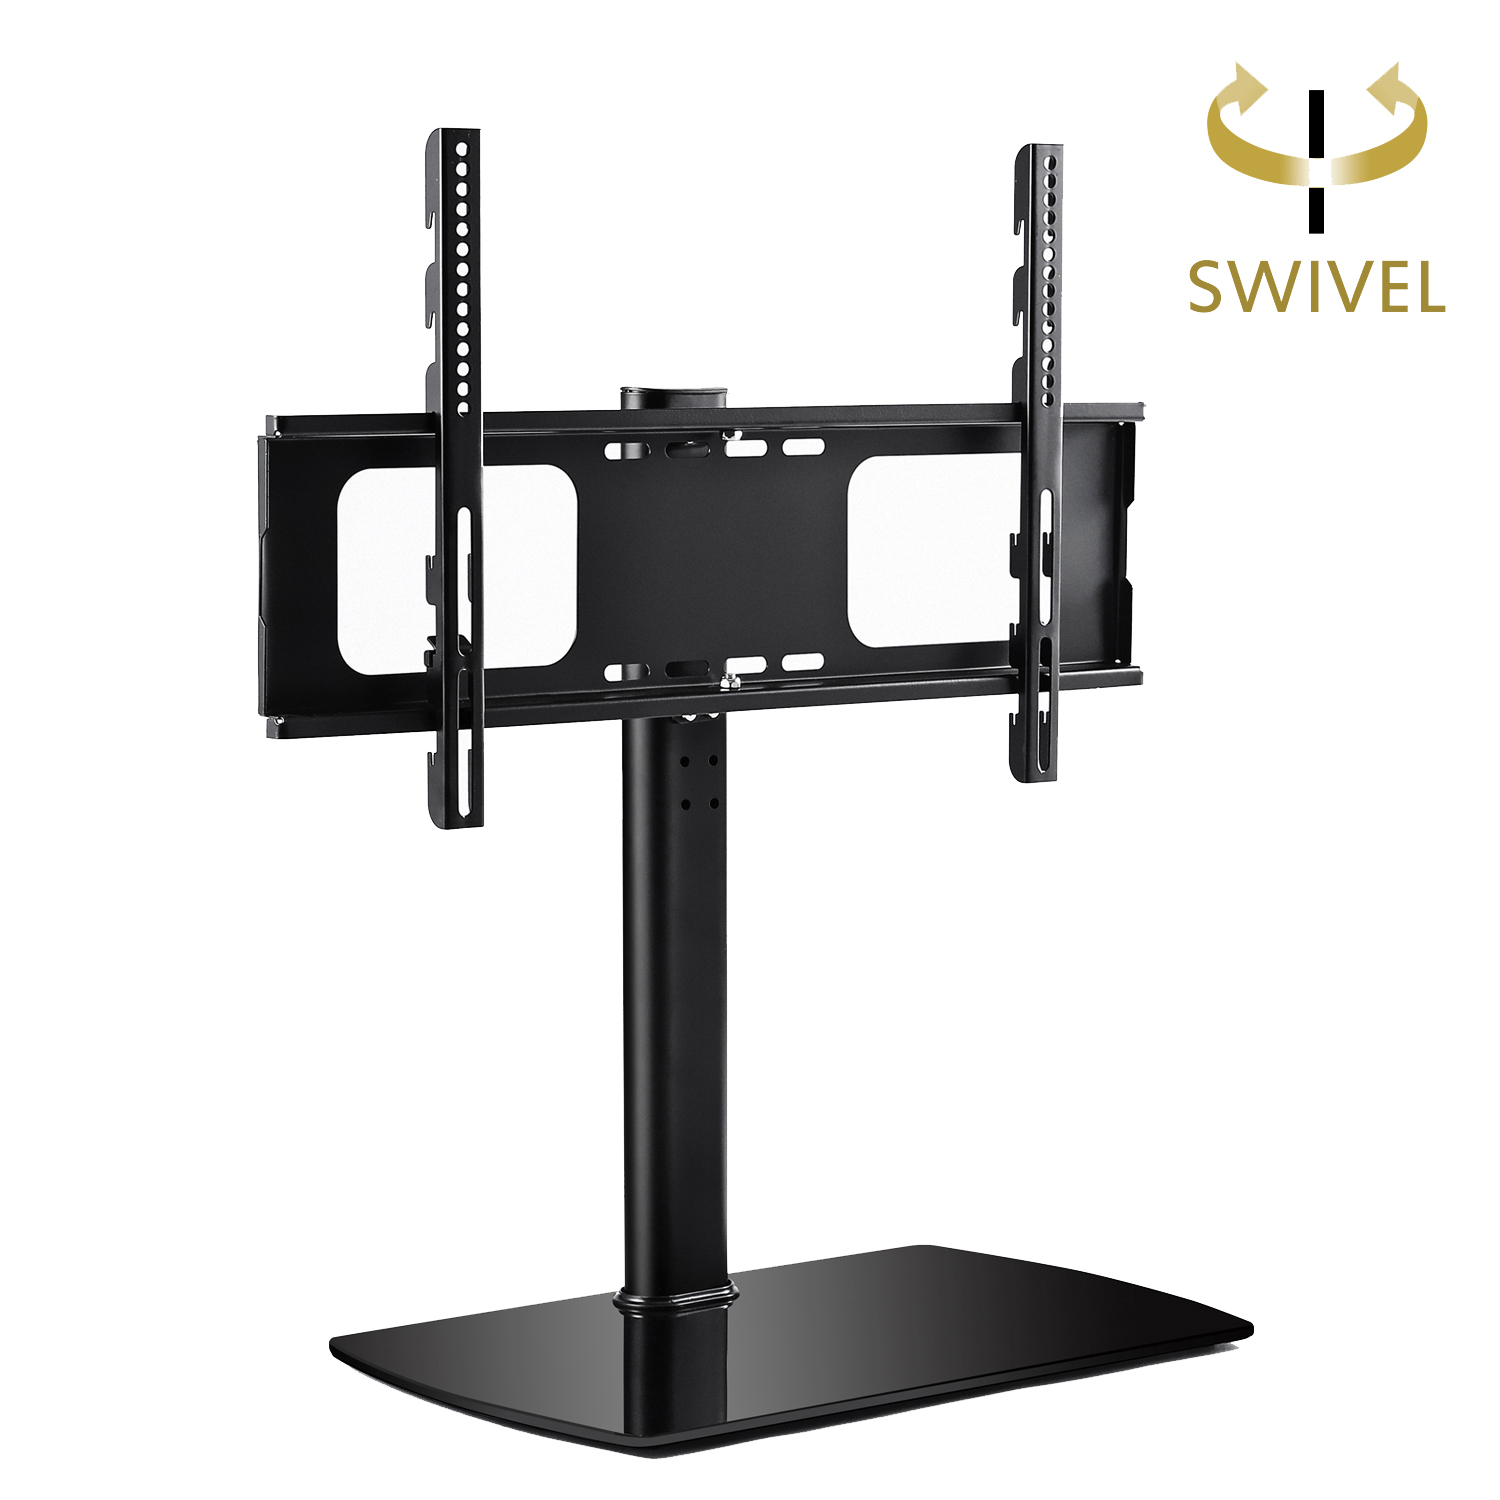 "RFIVER Universal Swivel Tabletop TV Stand with Mount for 32""-65"" LED,LCD and Plasma Flat Screen TVs with Height Adjustment UT2001"